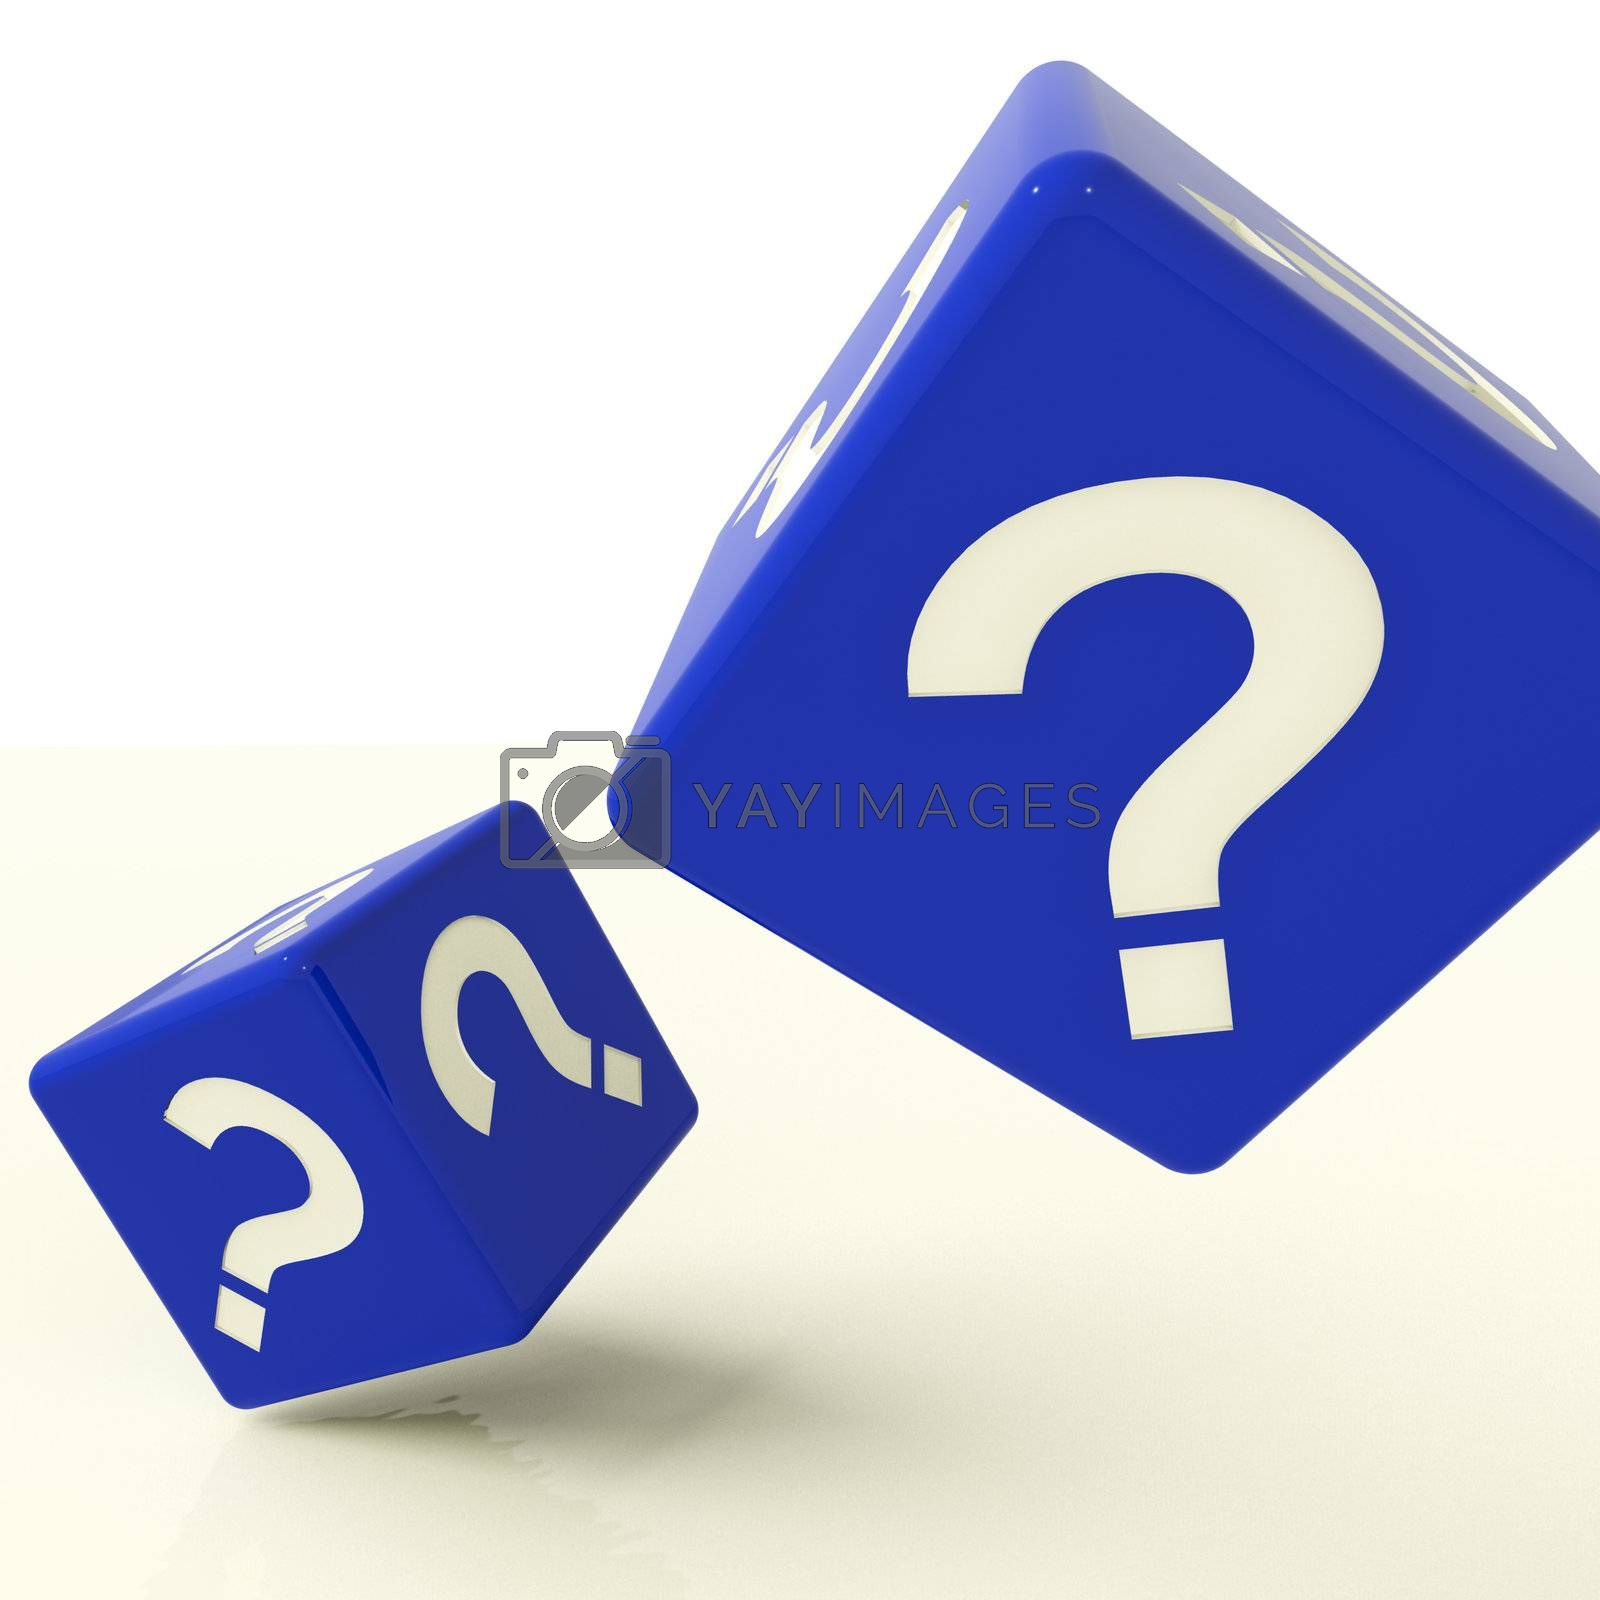 Question Mark Blue Dice As Symbol For Questions And Answers